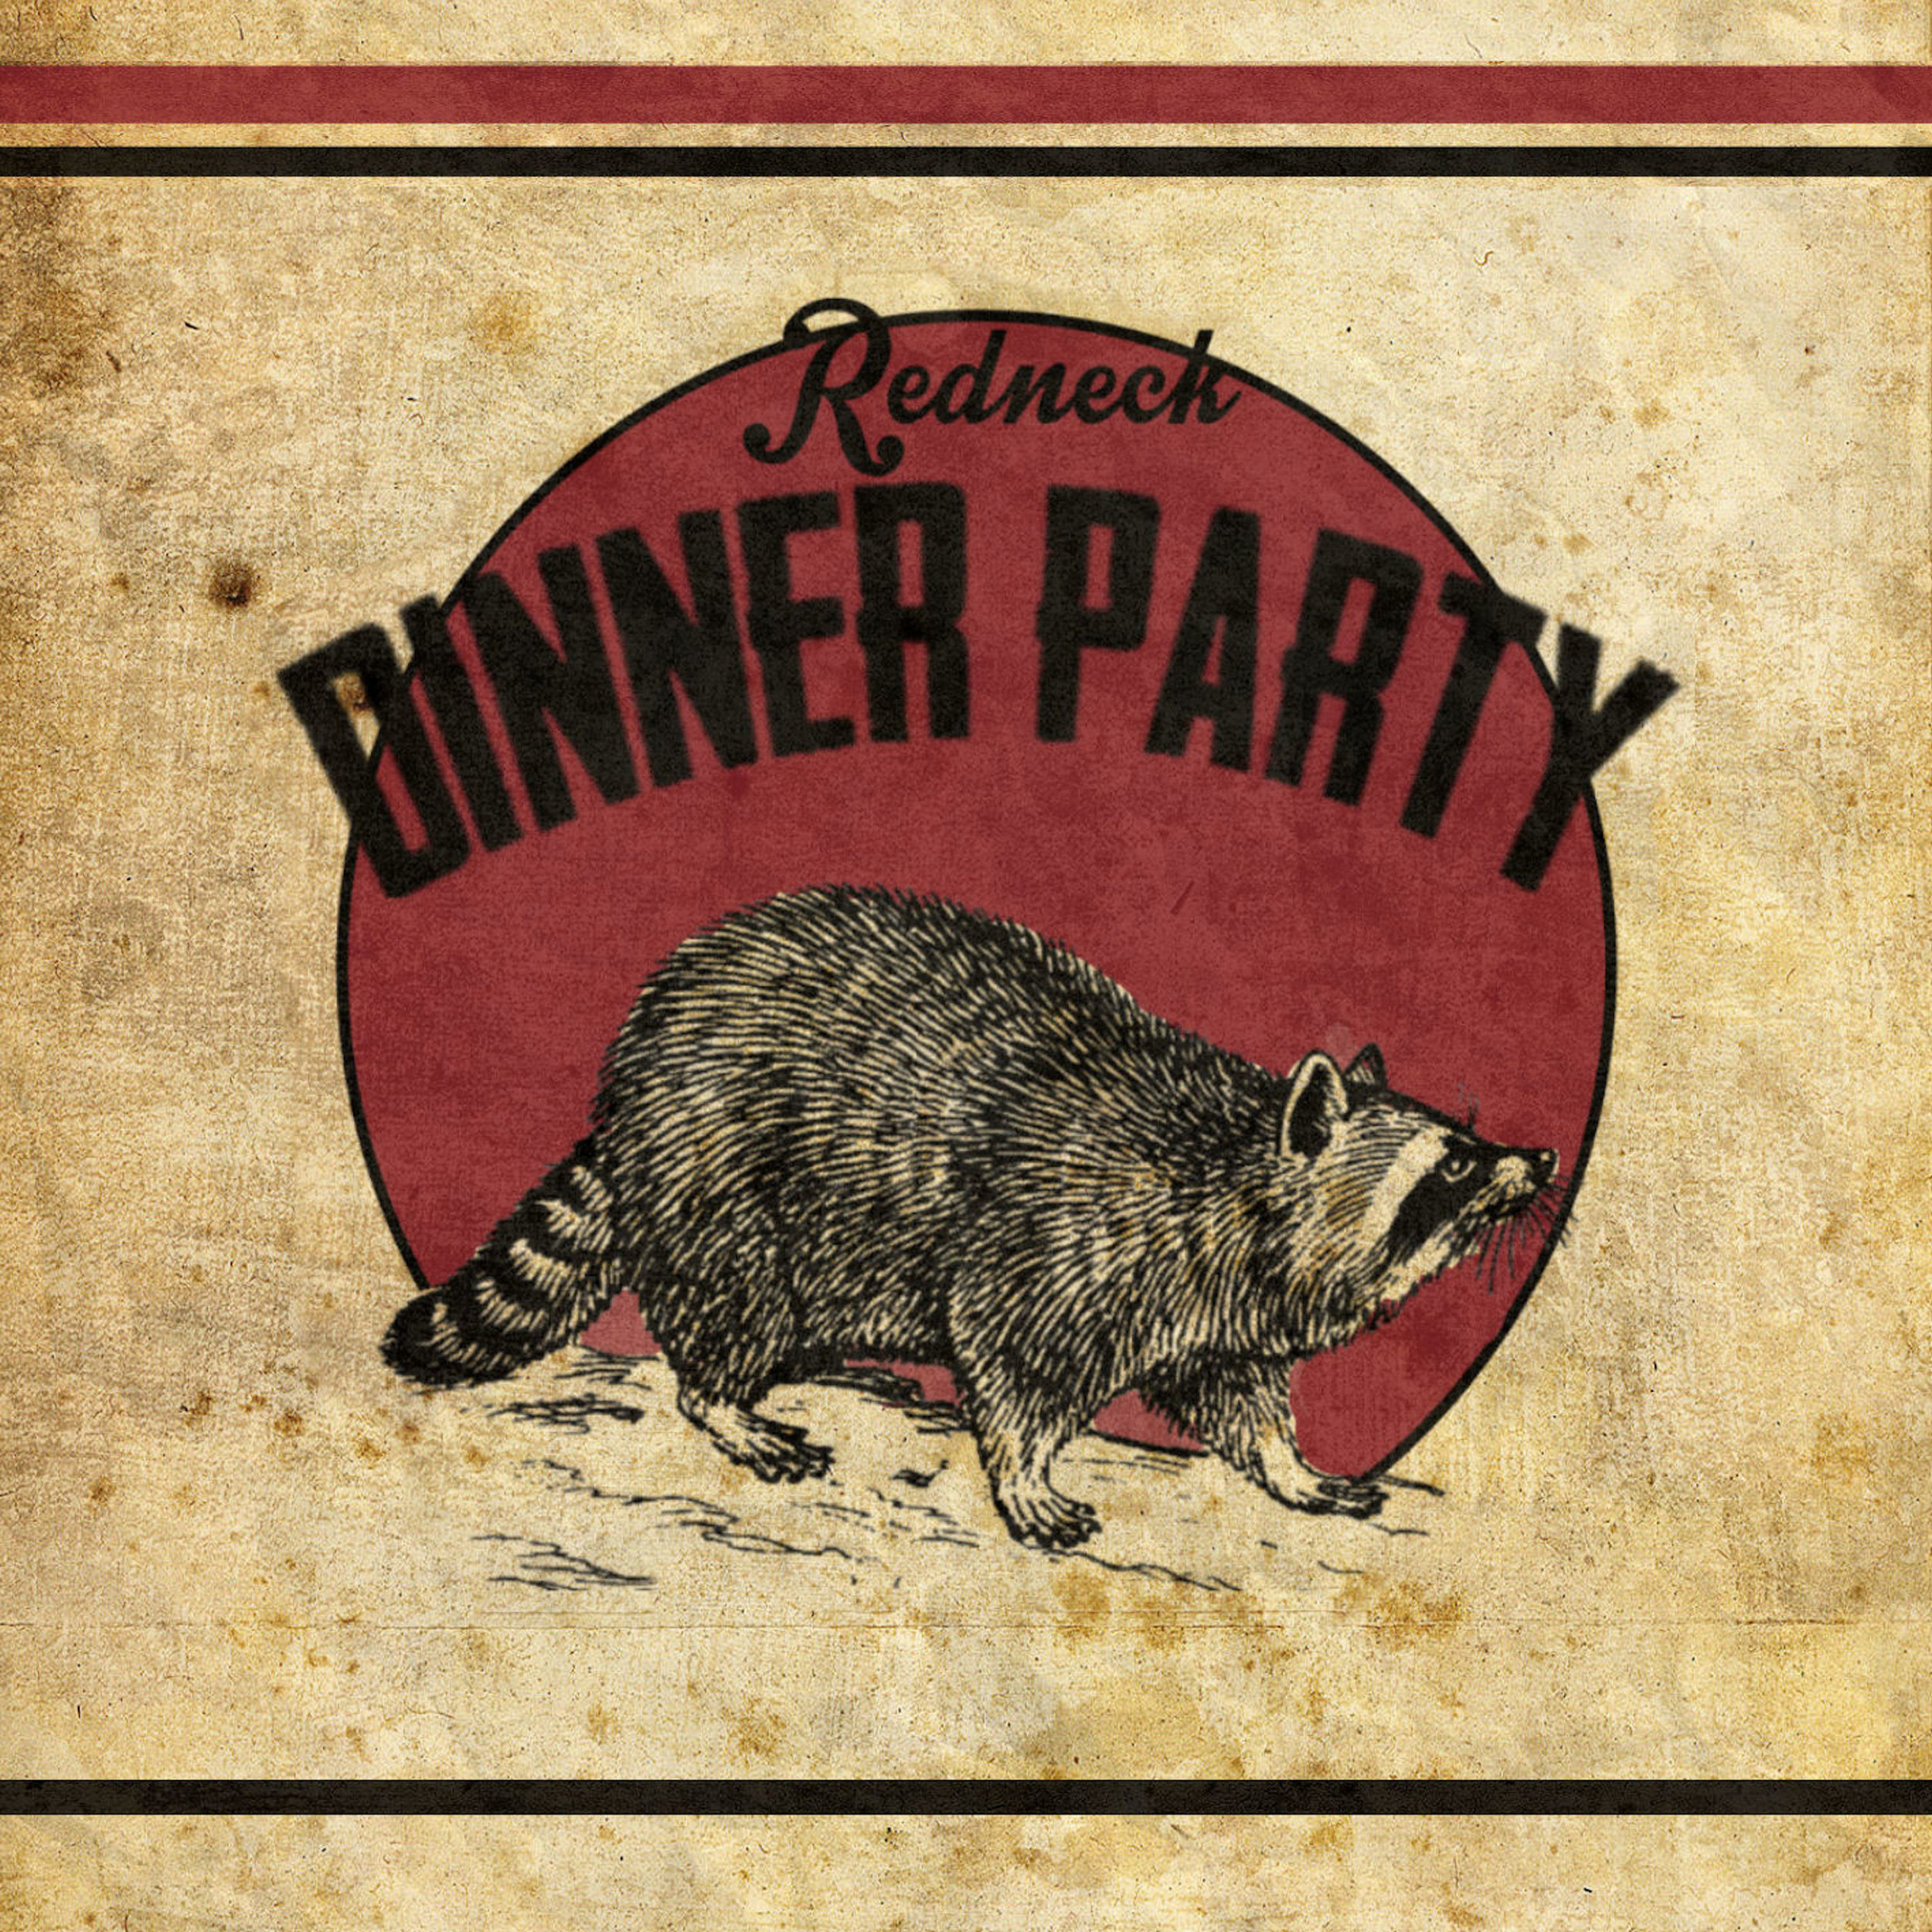 Redneck Dinner Party (ALBUM. 2010)  Preview/ Buy -  CLICK HERE